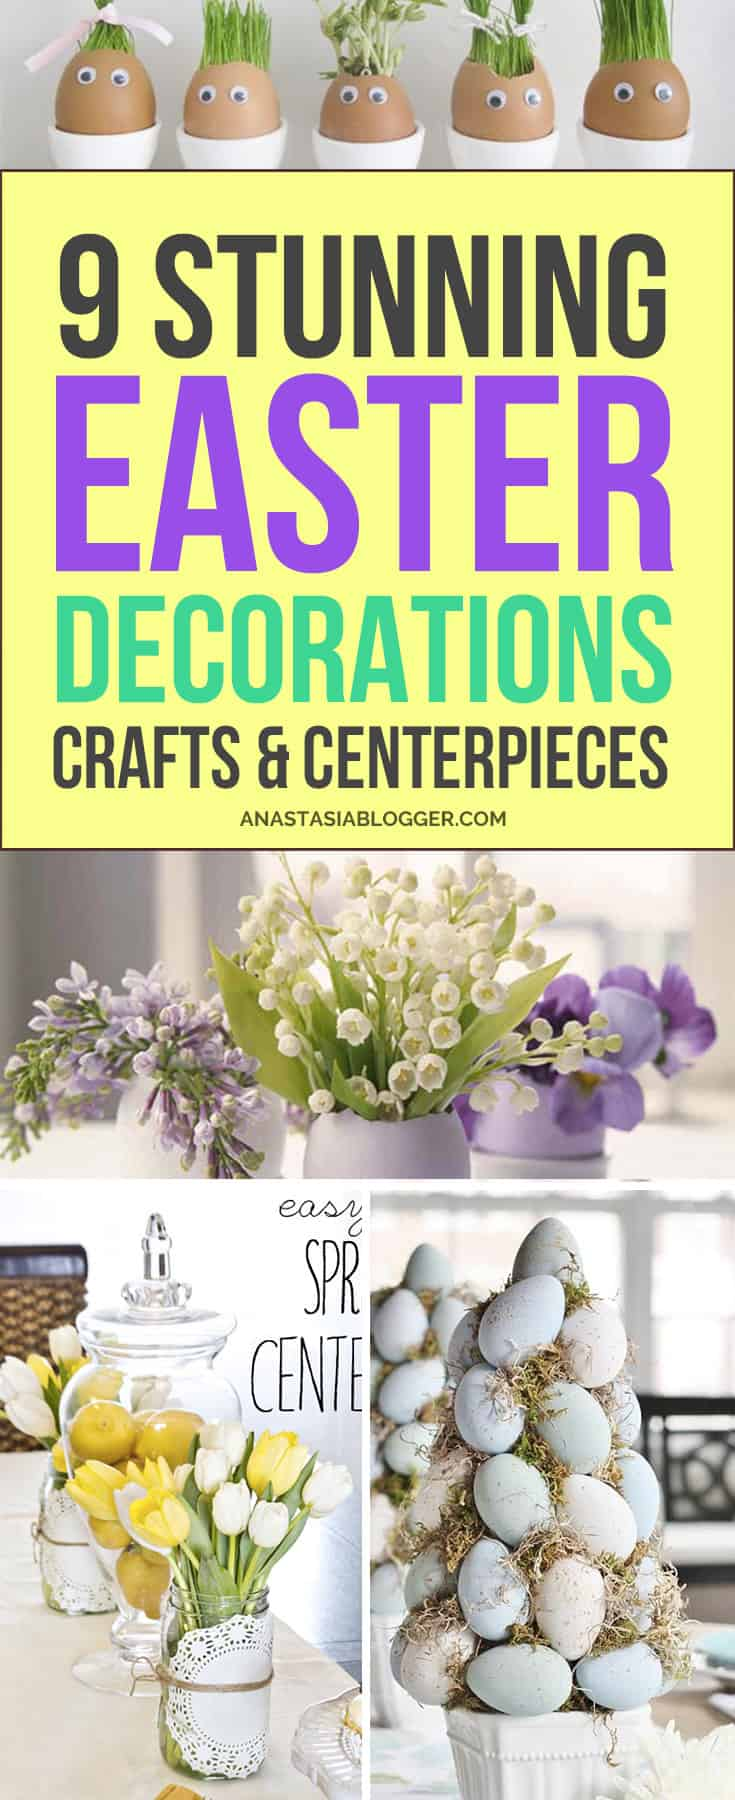 9 Easter Decorations DIY – try to do these Easter Crafts and Centerpieces in 2018! Easter ideas for a beautiful table - make these crafts with your kids! Dollar store DIY projects, Easter egg wreath, rustic, vintage and elegant - all kinds of decorations for the home.